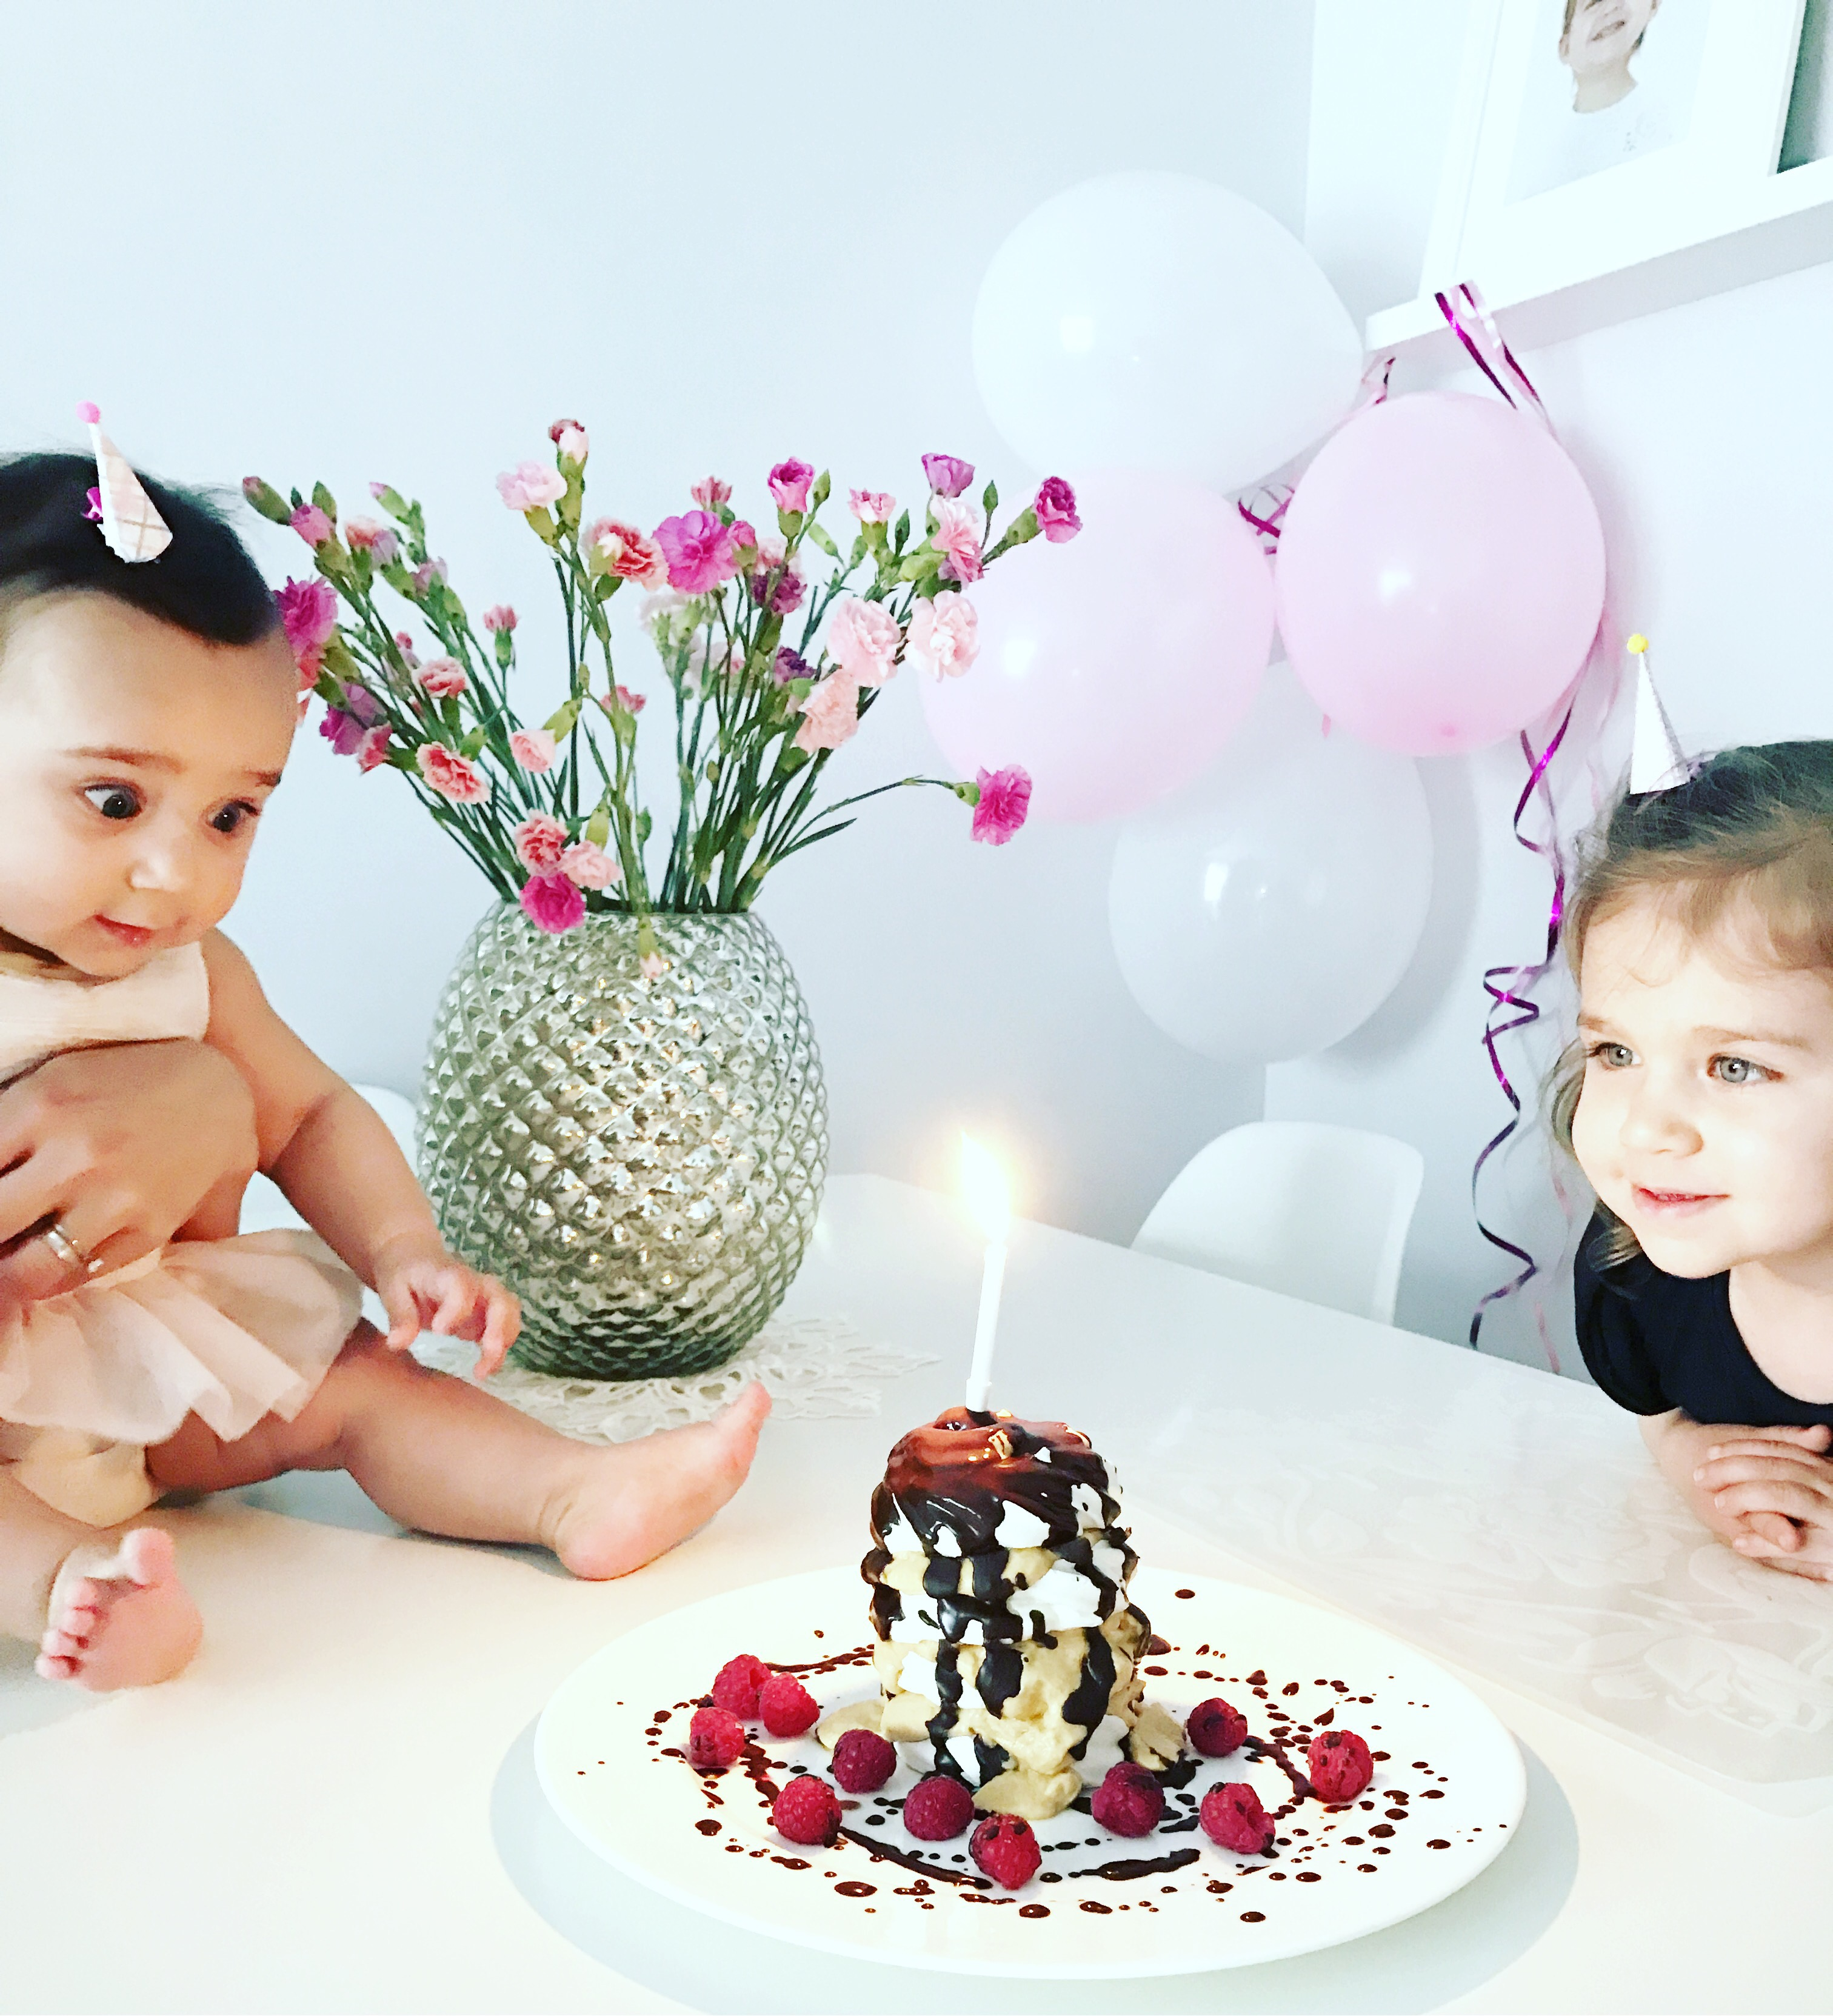 6 Months Of Seeing Chloe Becoming The Most Loving And Wonderful Big Sister HAPPY 1 2 BIRTHDAY BABY GIRL